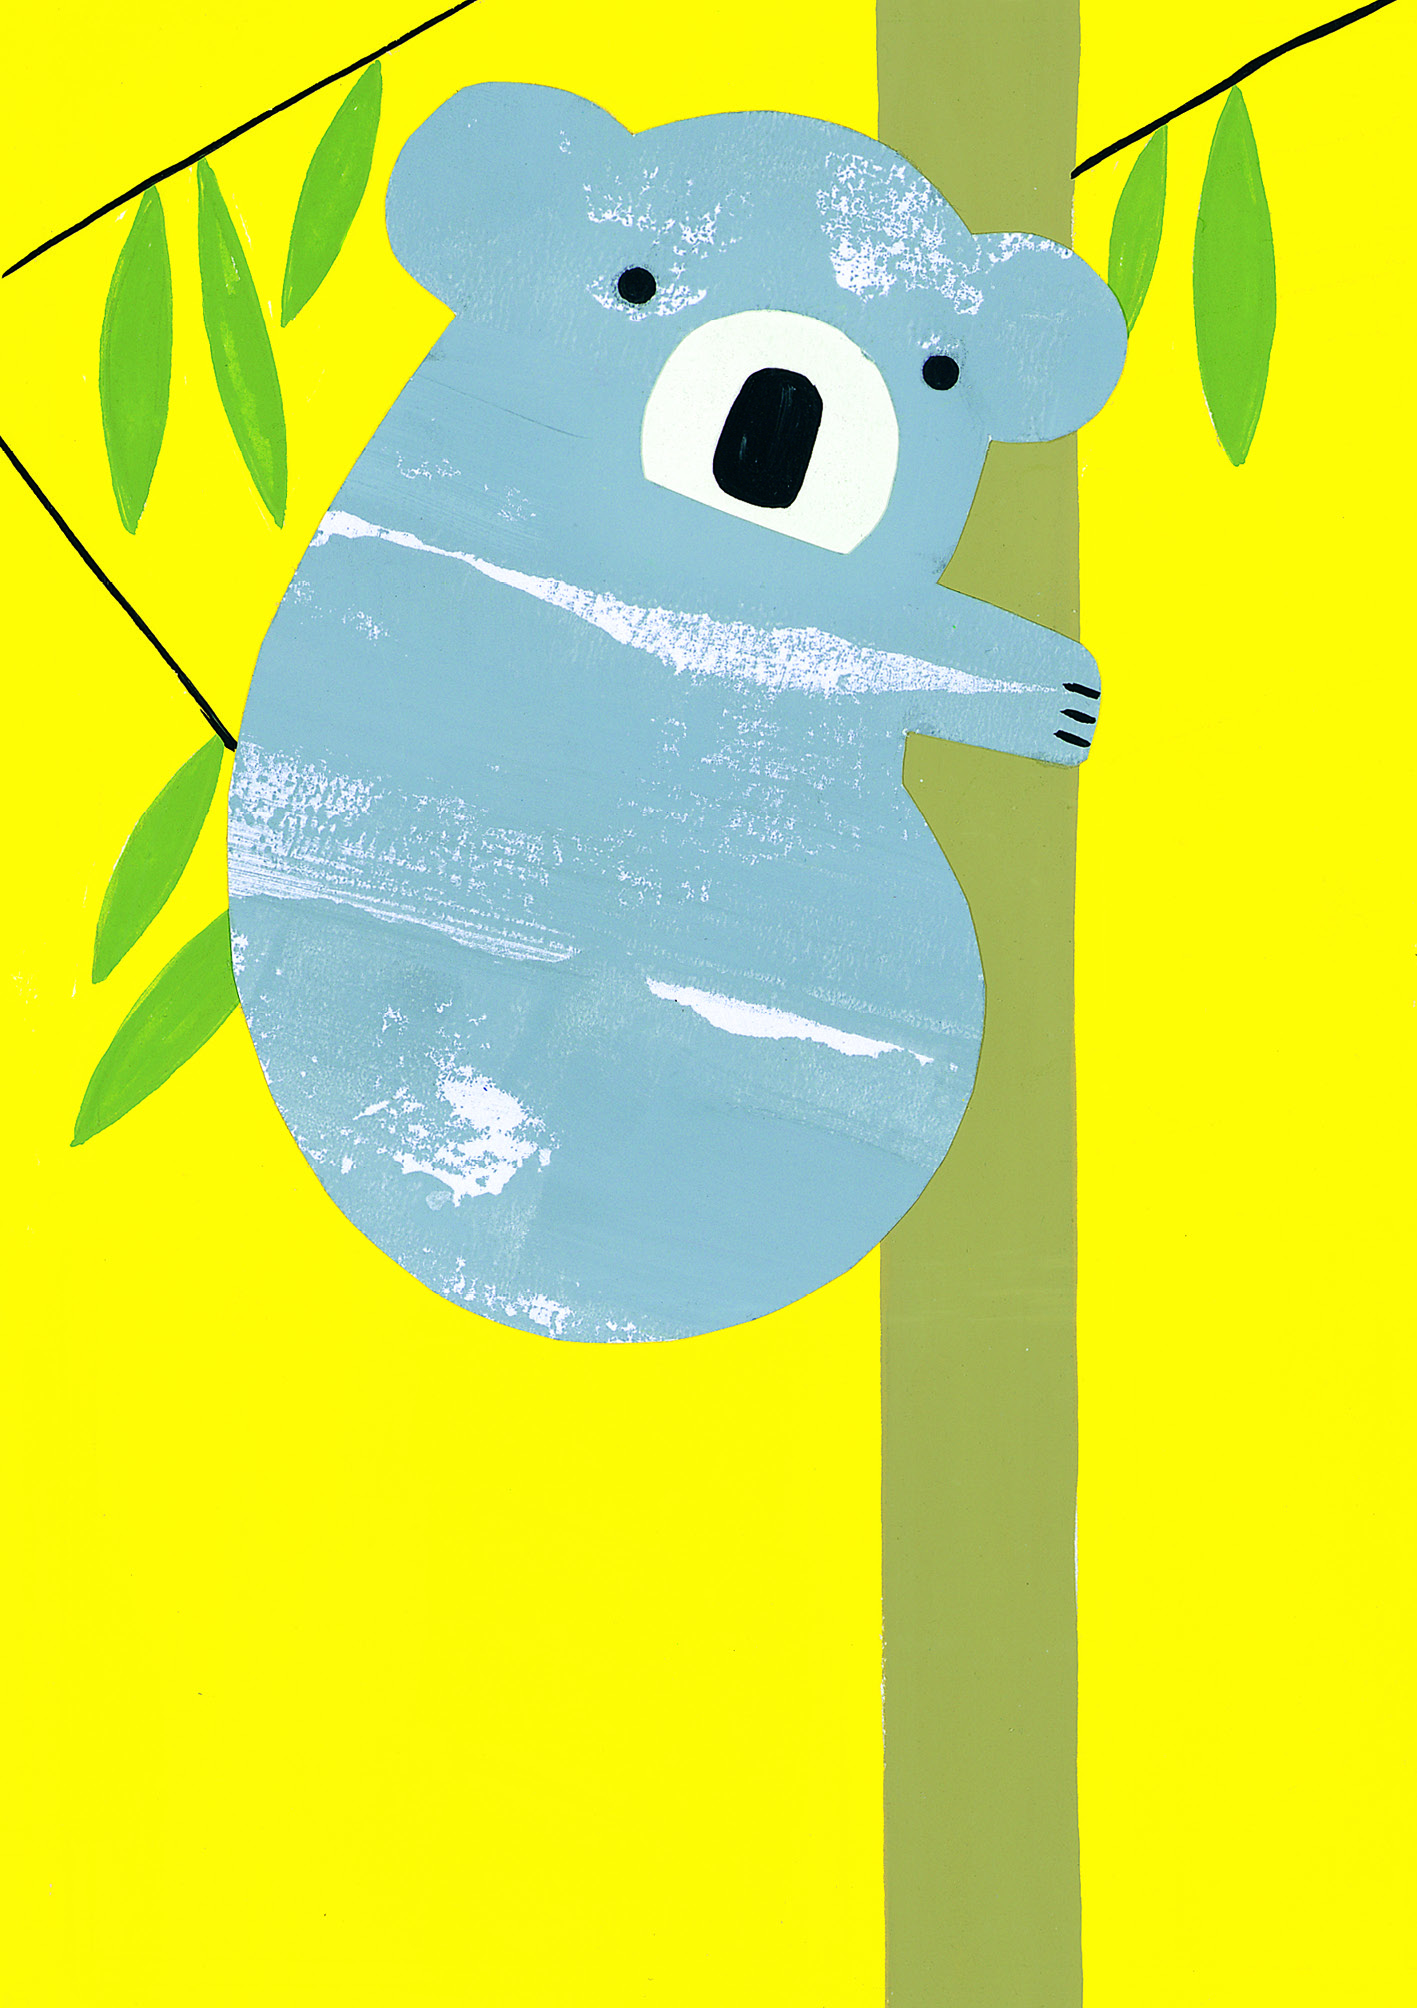 Above: Hang On! by Hannah Pontin from ArtPress' The Wildside range.